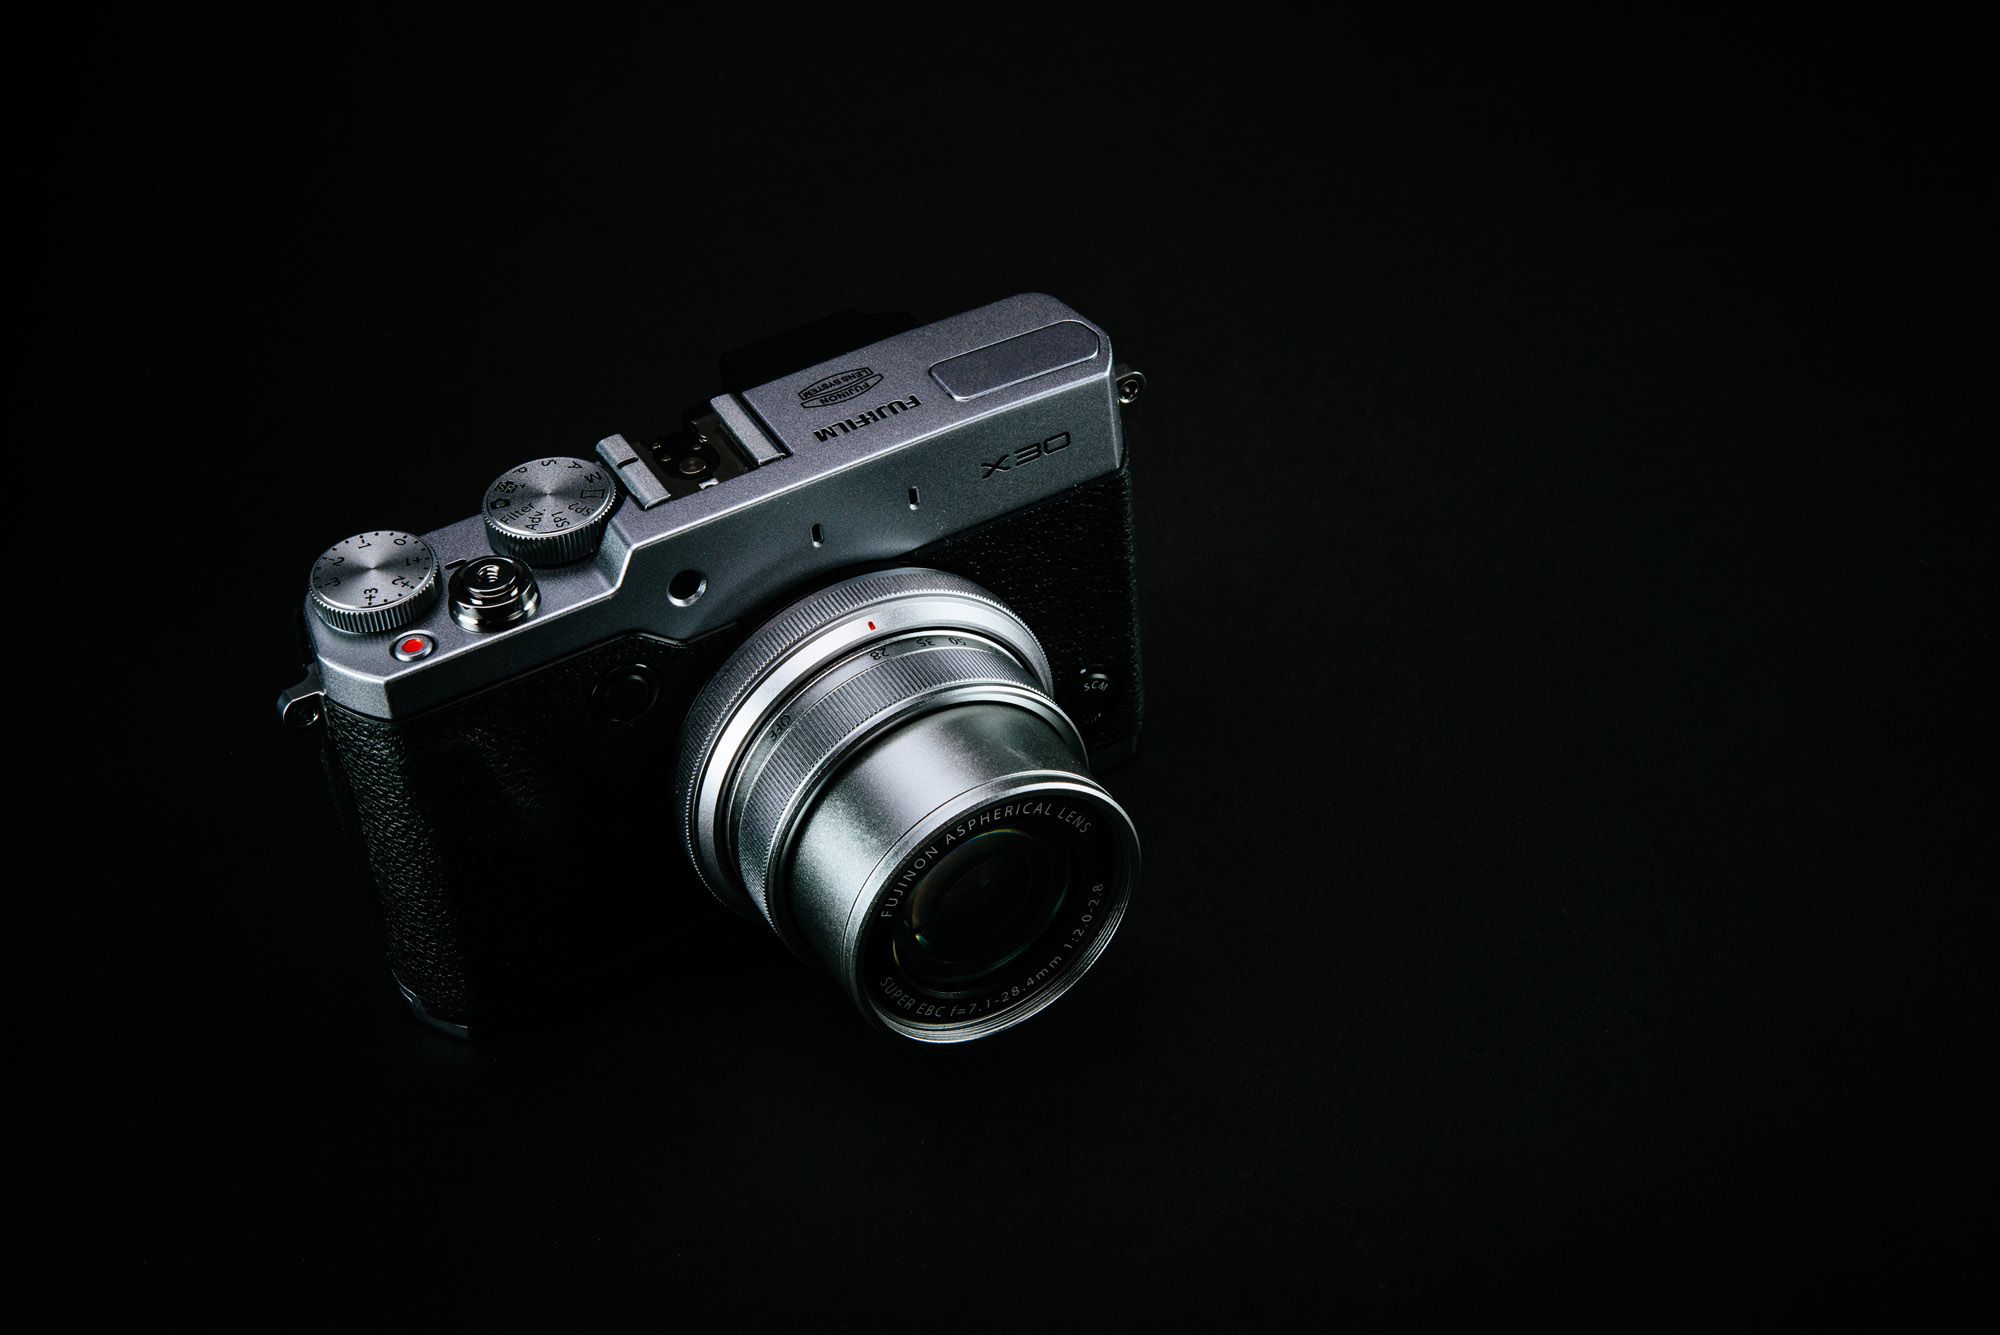 Fujifilm x30 review – Review By Richard